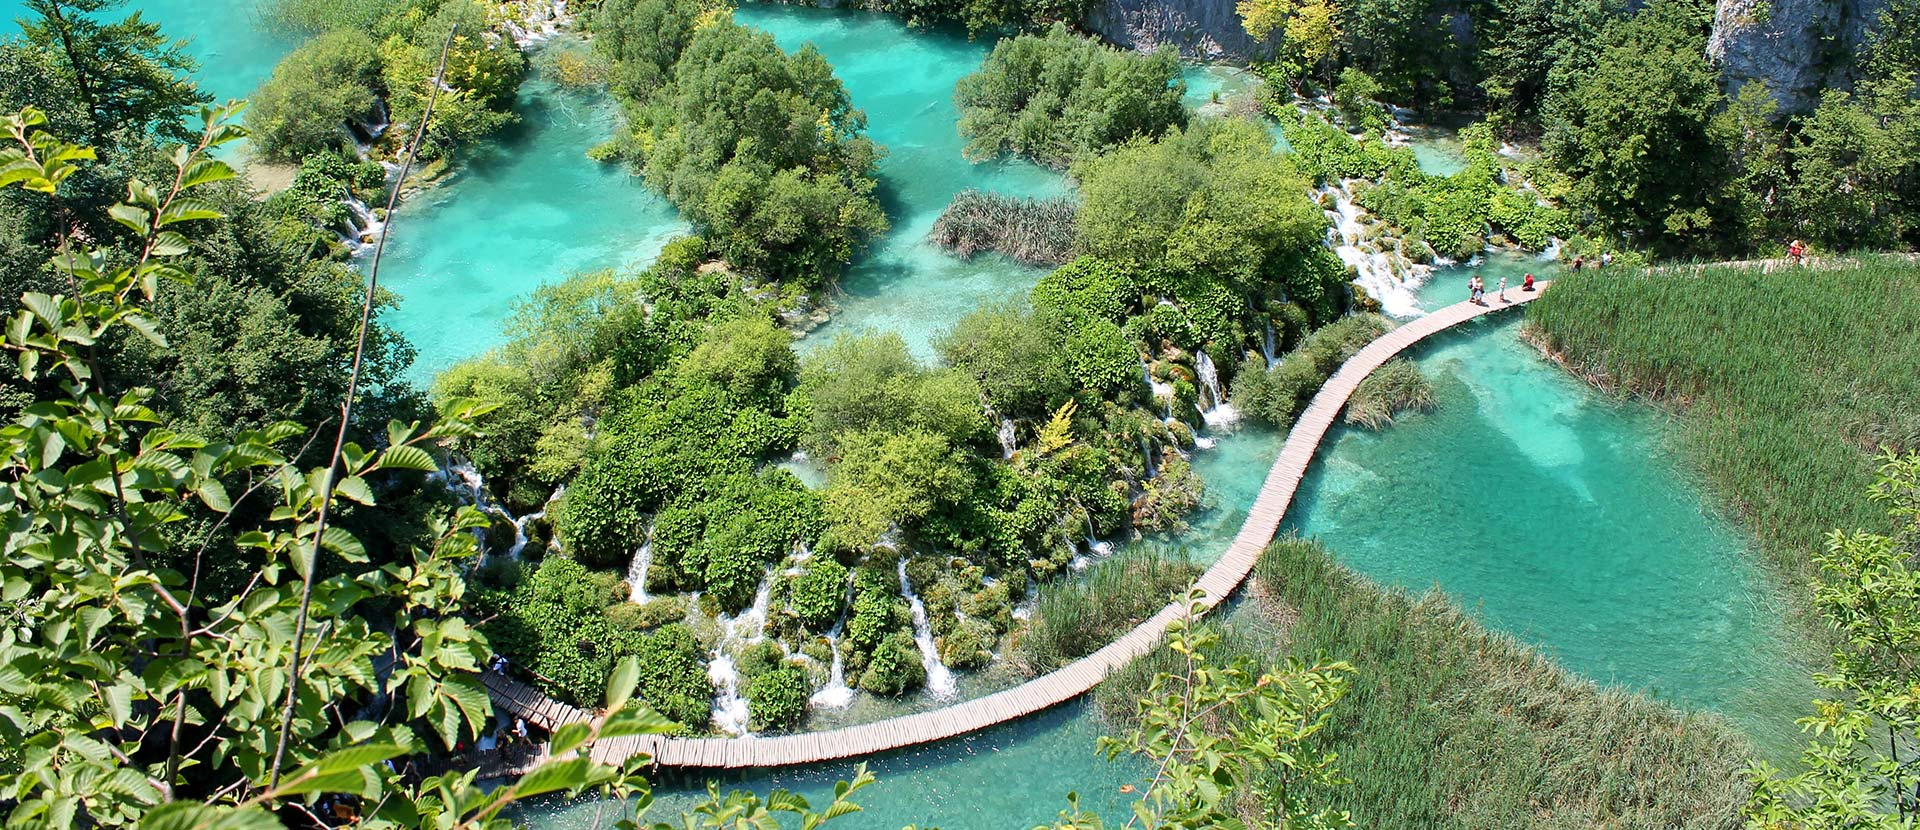 Plitvice Lakes, a magical place!